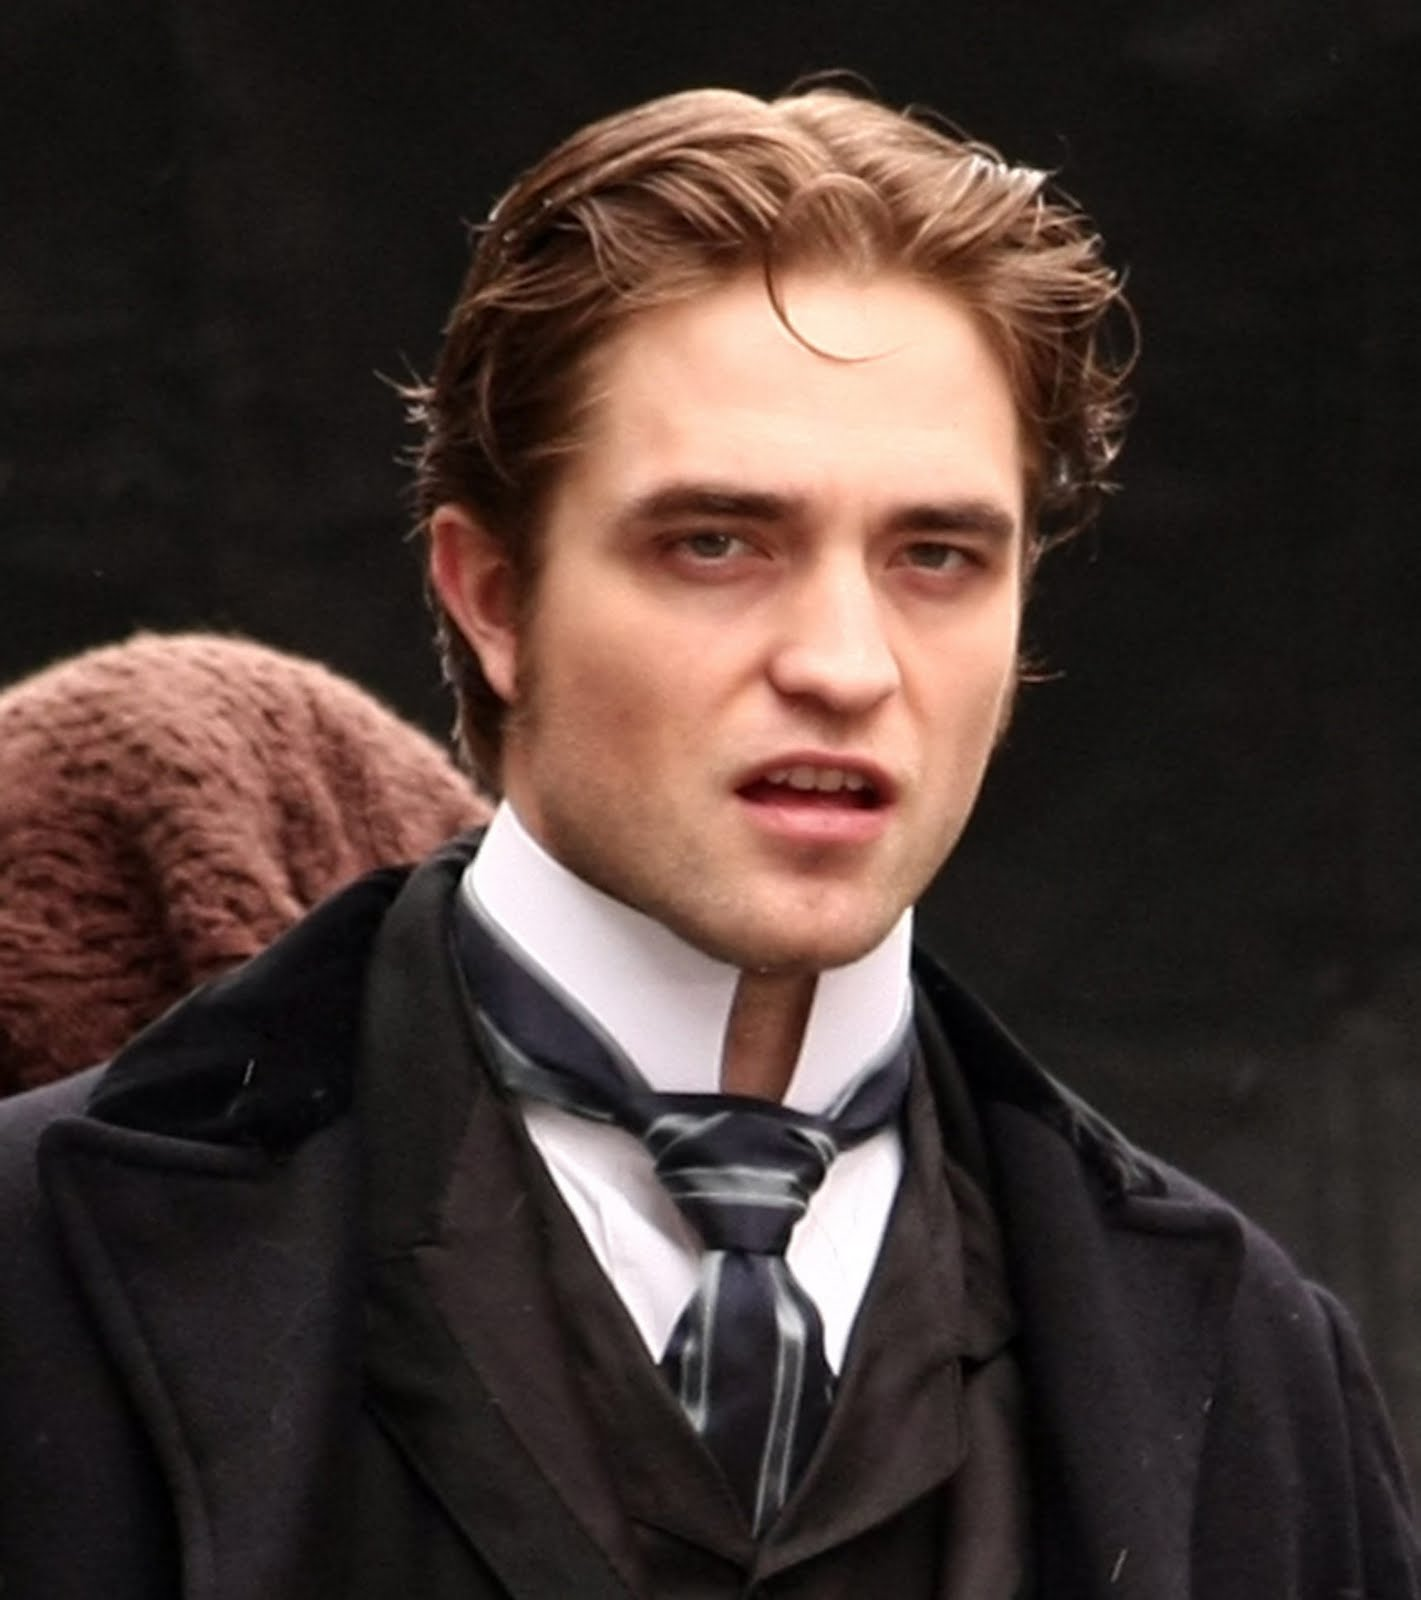 Model Talks About 'Bel Ami' Sex Scene With Robert Pattinson